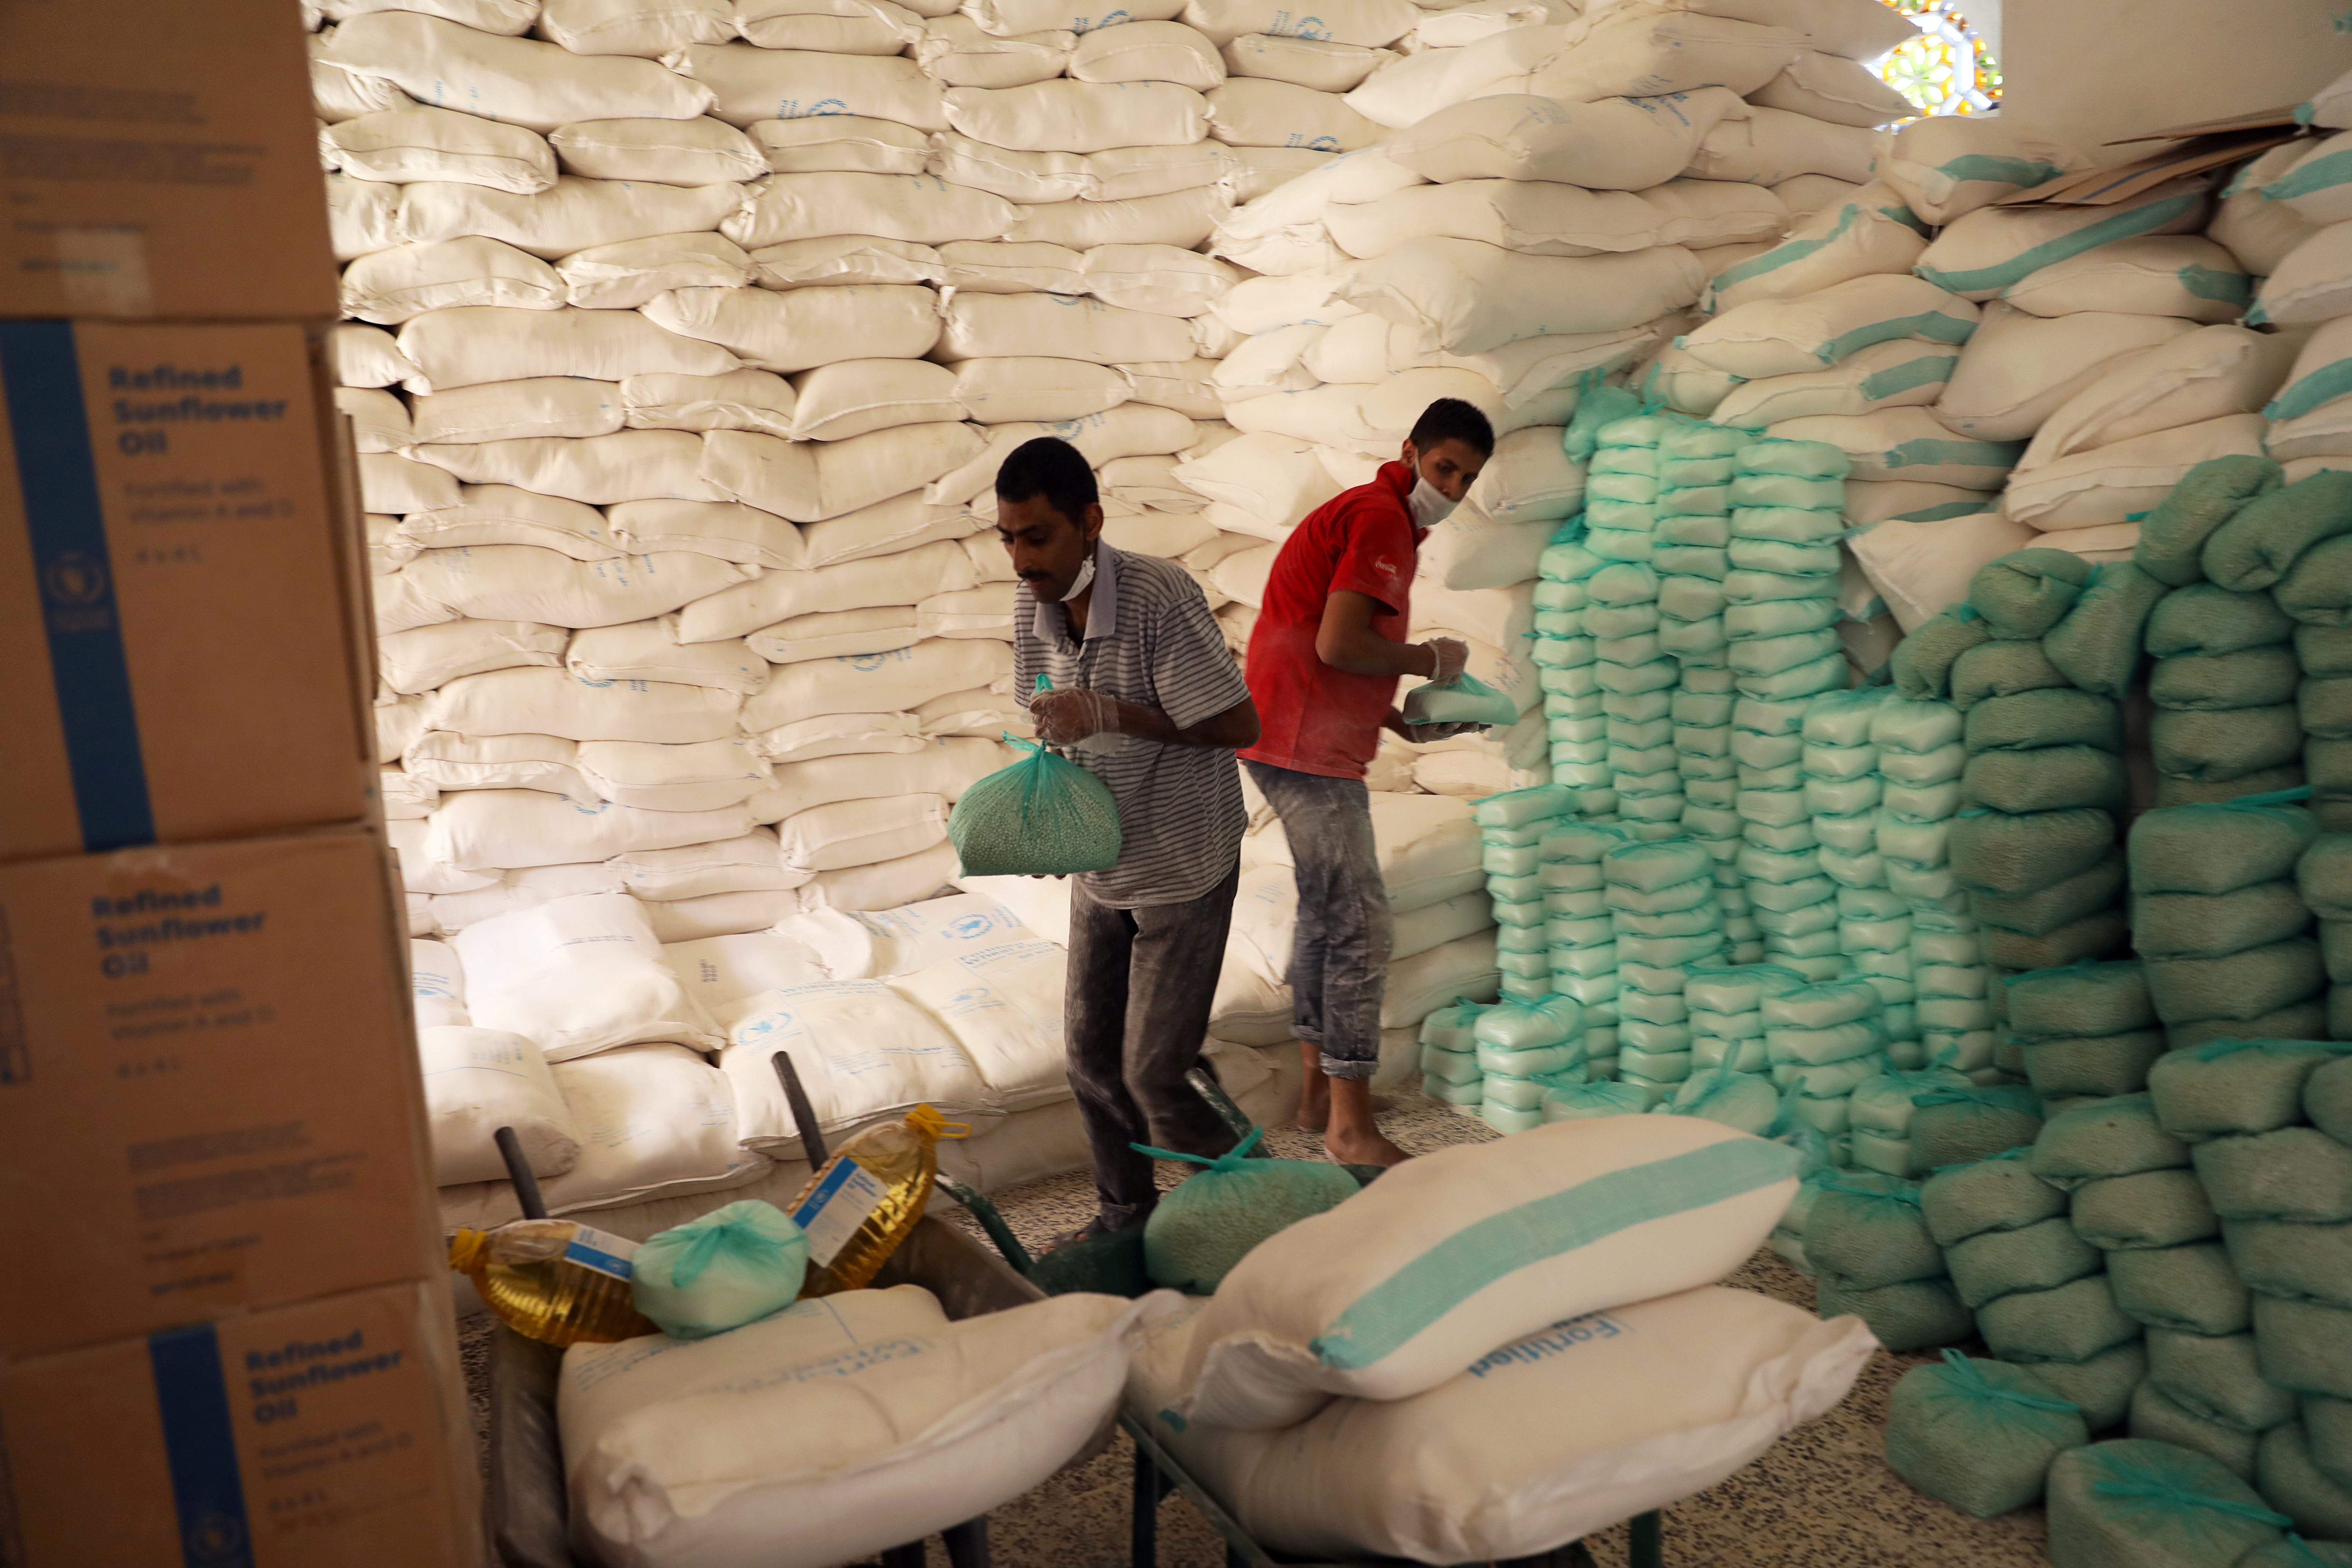 Food aid ramps up in Yemen, but funding crisis persists